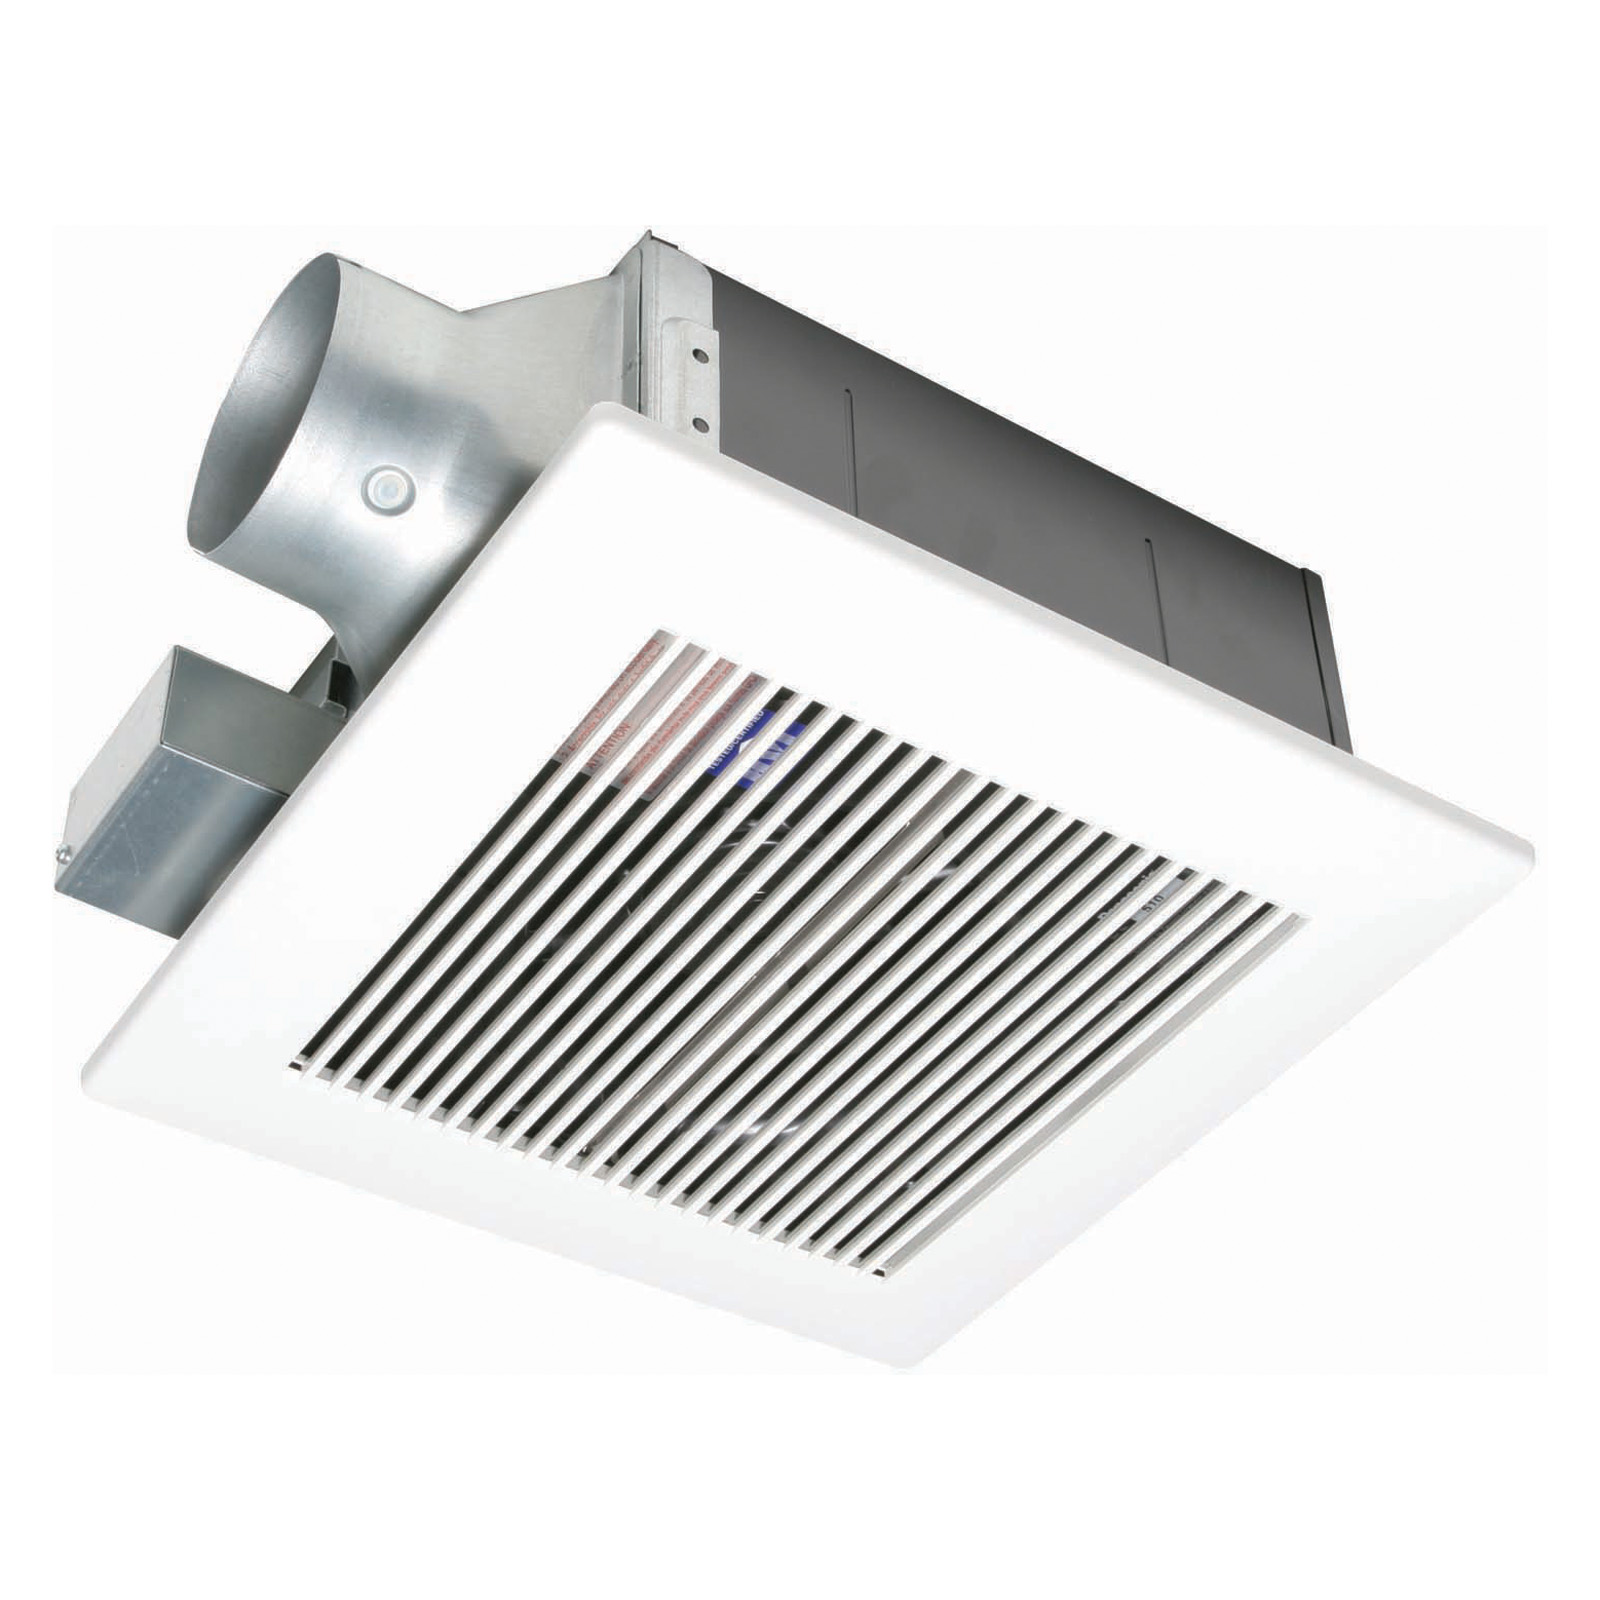 Mountable Exhaust Fan : Panasonic whisperfit fv vf ceiling mount bathroom fan